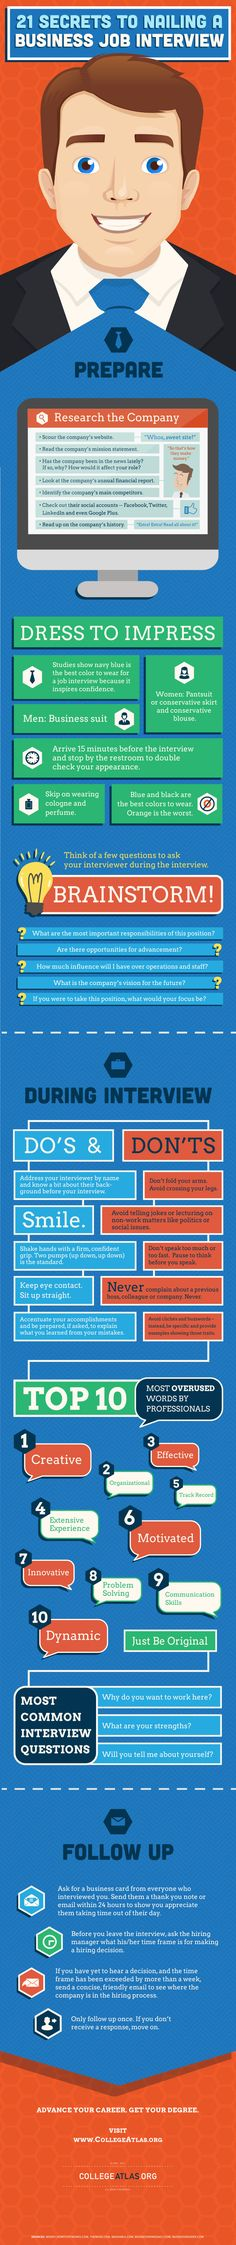 The Top 21 Secrets to Nailing a Business Job Interview #Infographics #career #social — Lightscap3s.com